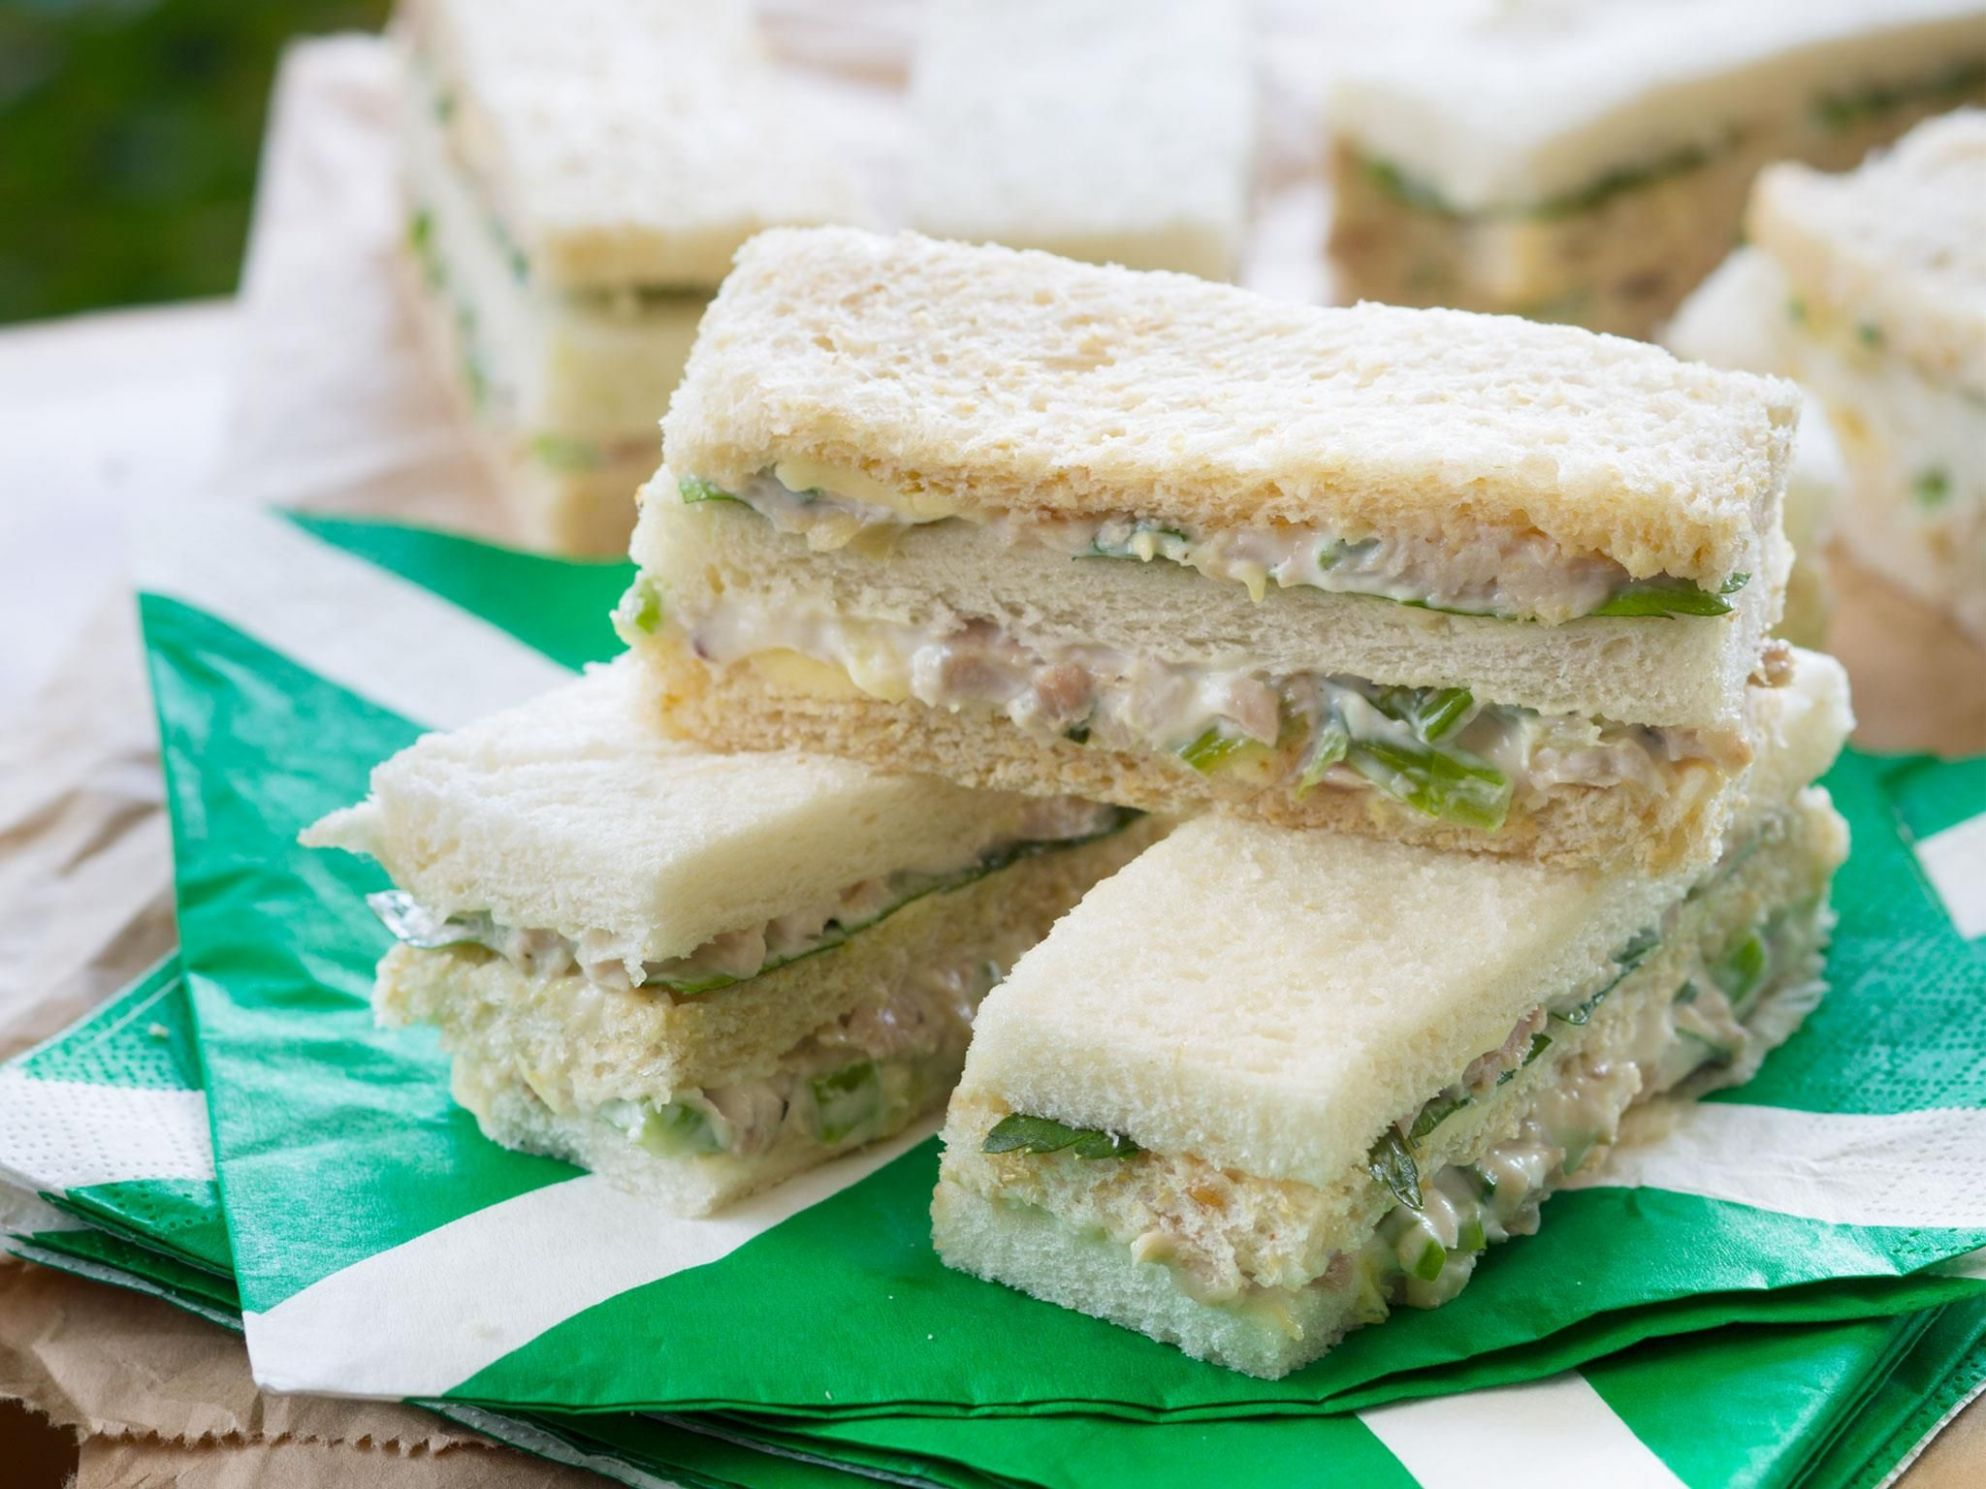 There's a real art to creating the perfect chicken club sandwich ...